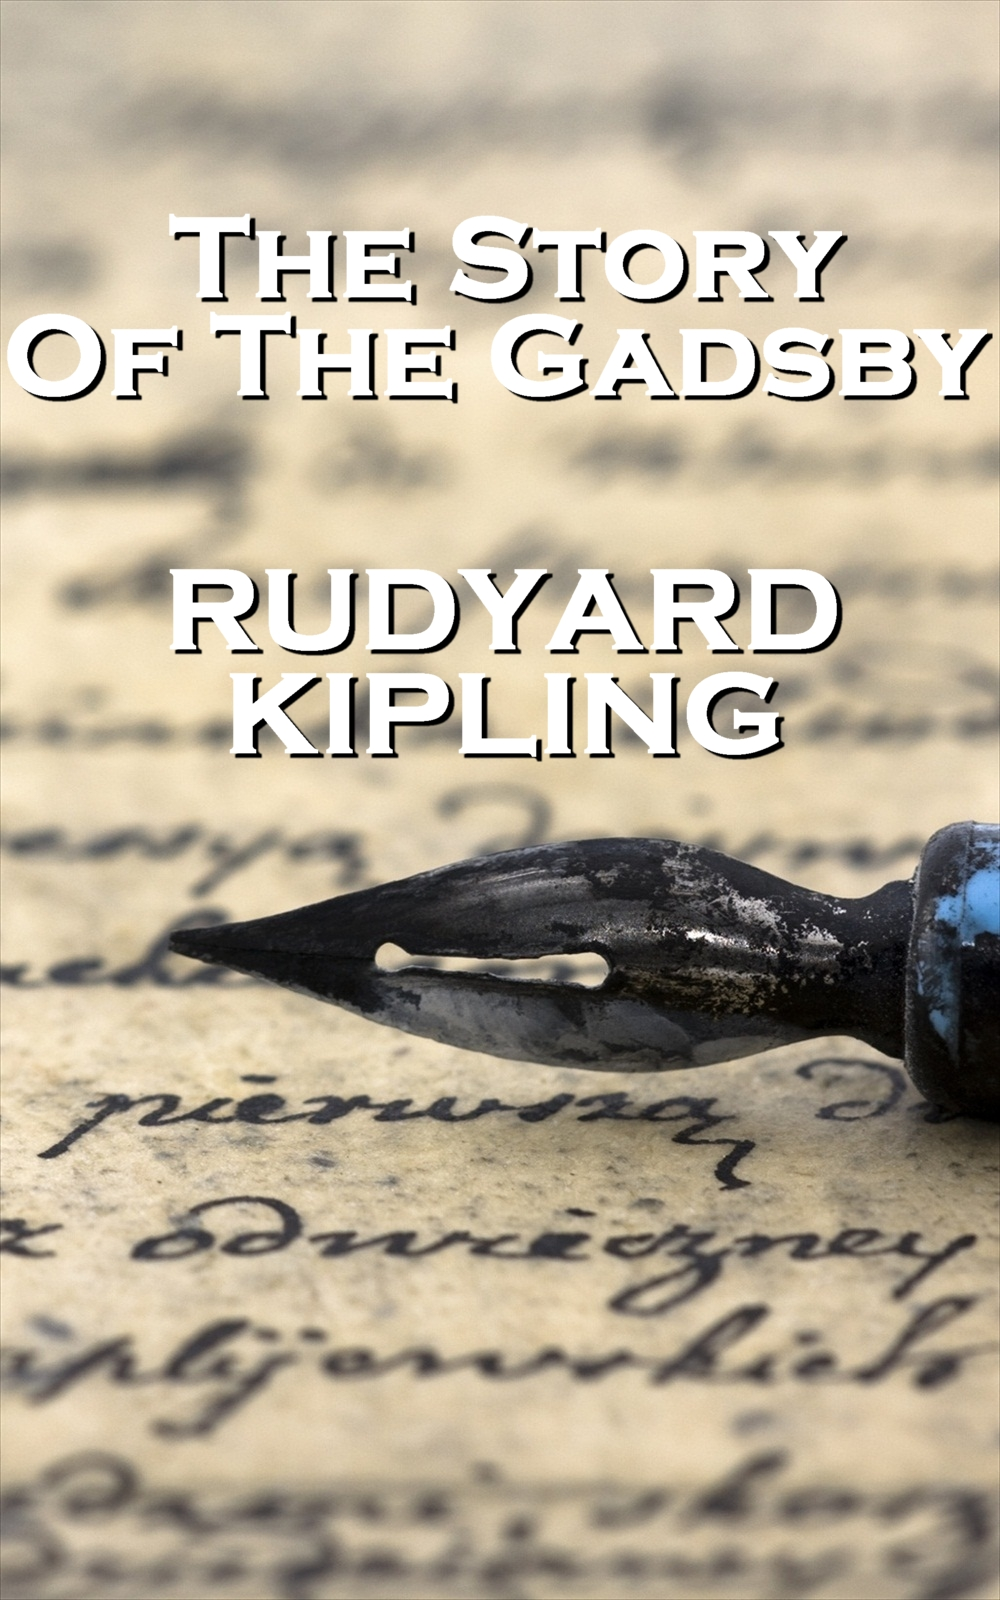 Rudyard Kipling - The Story Of The Gadsby